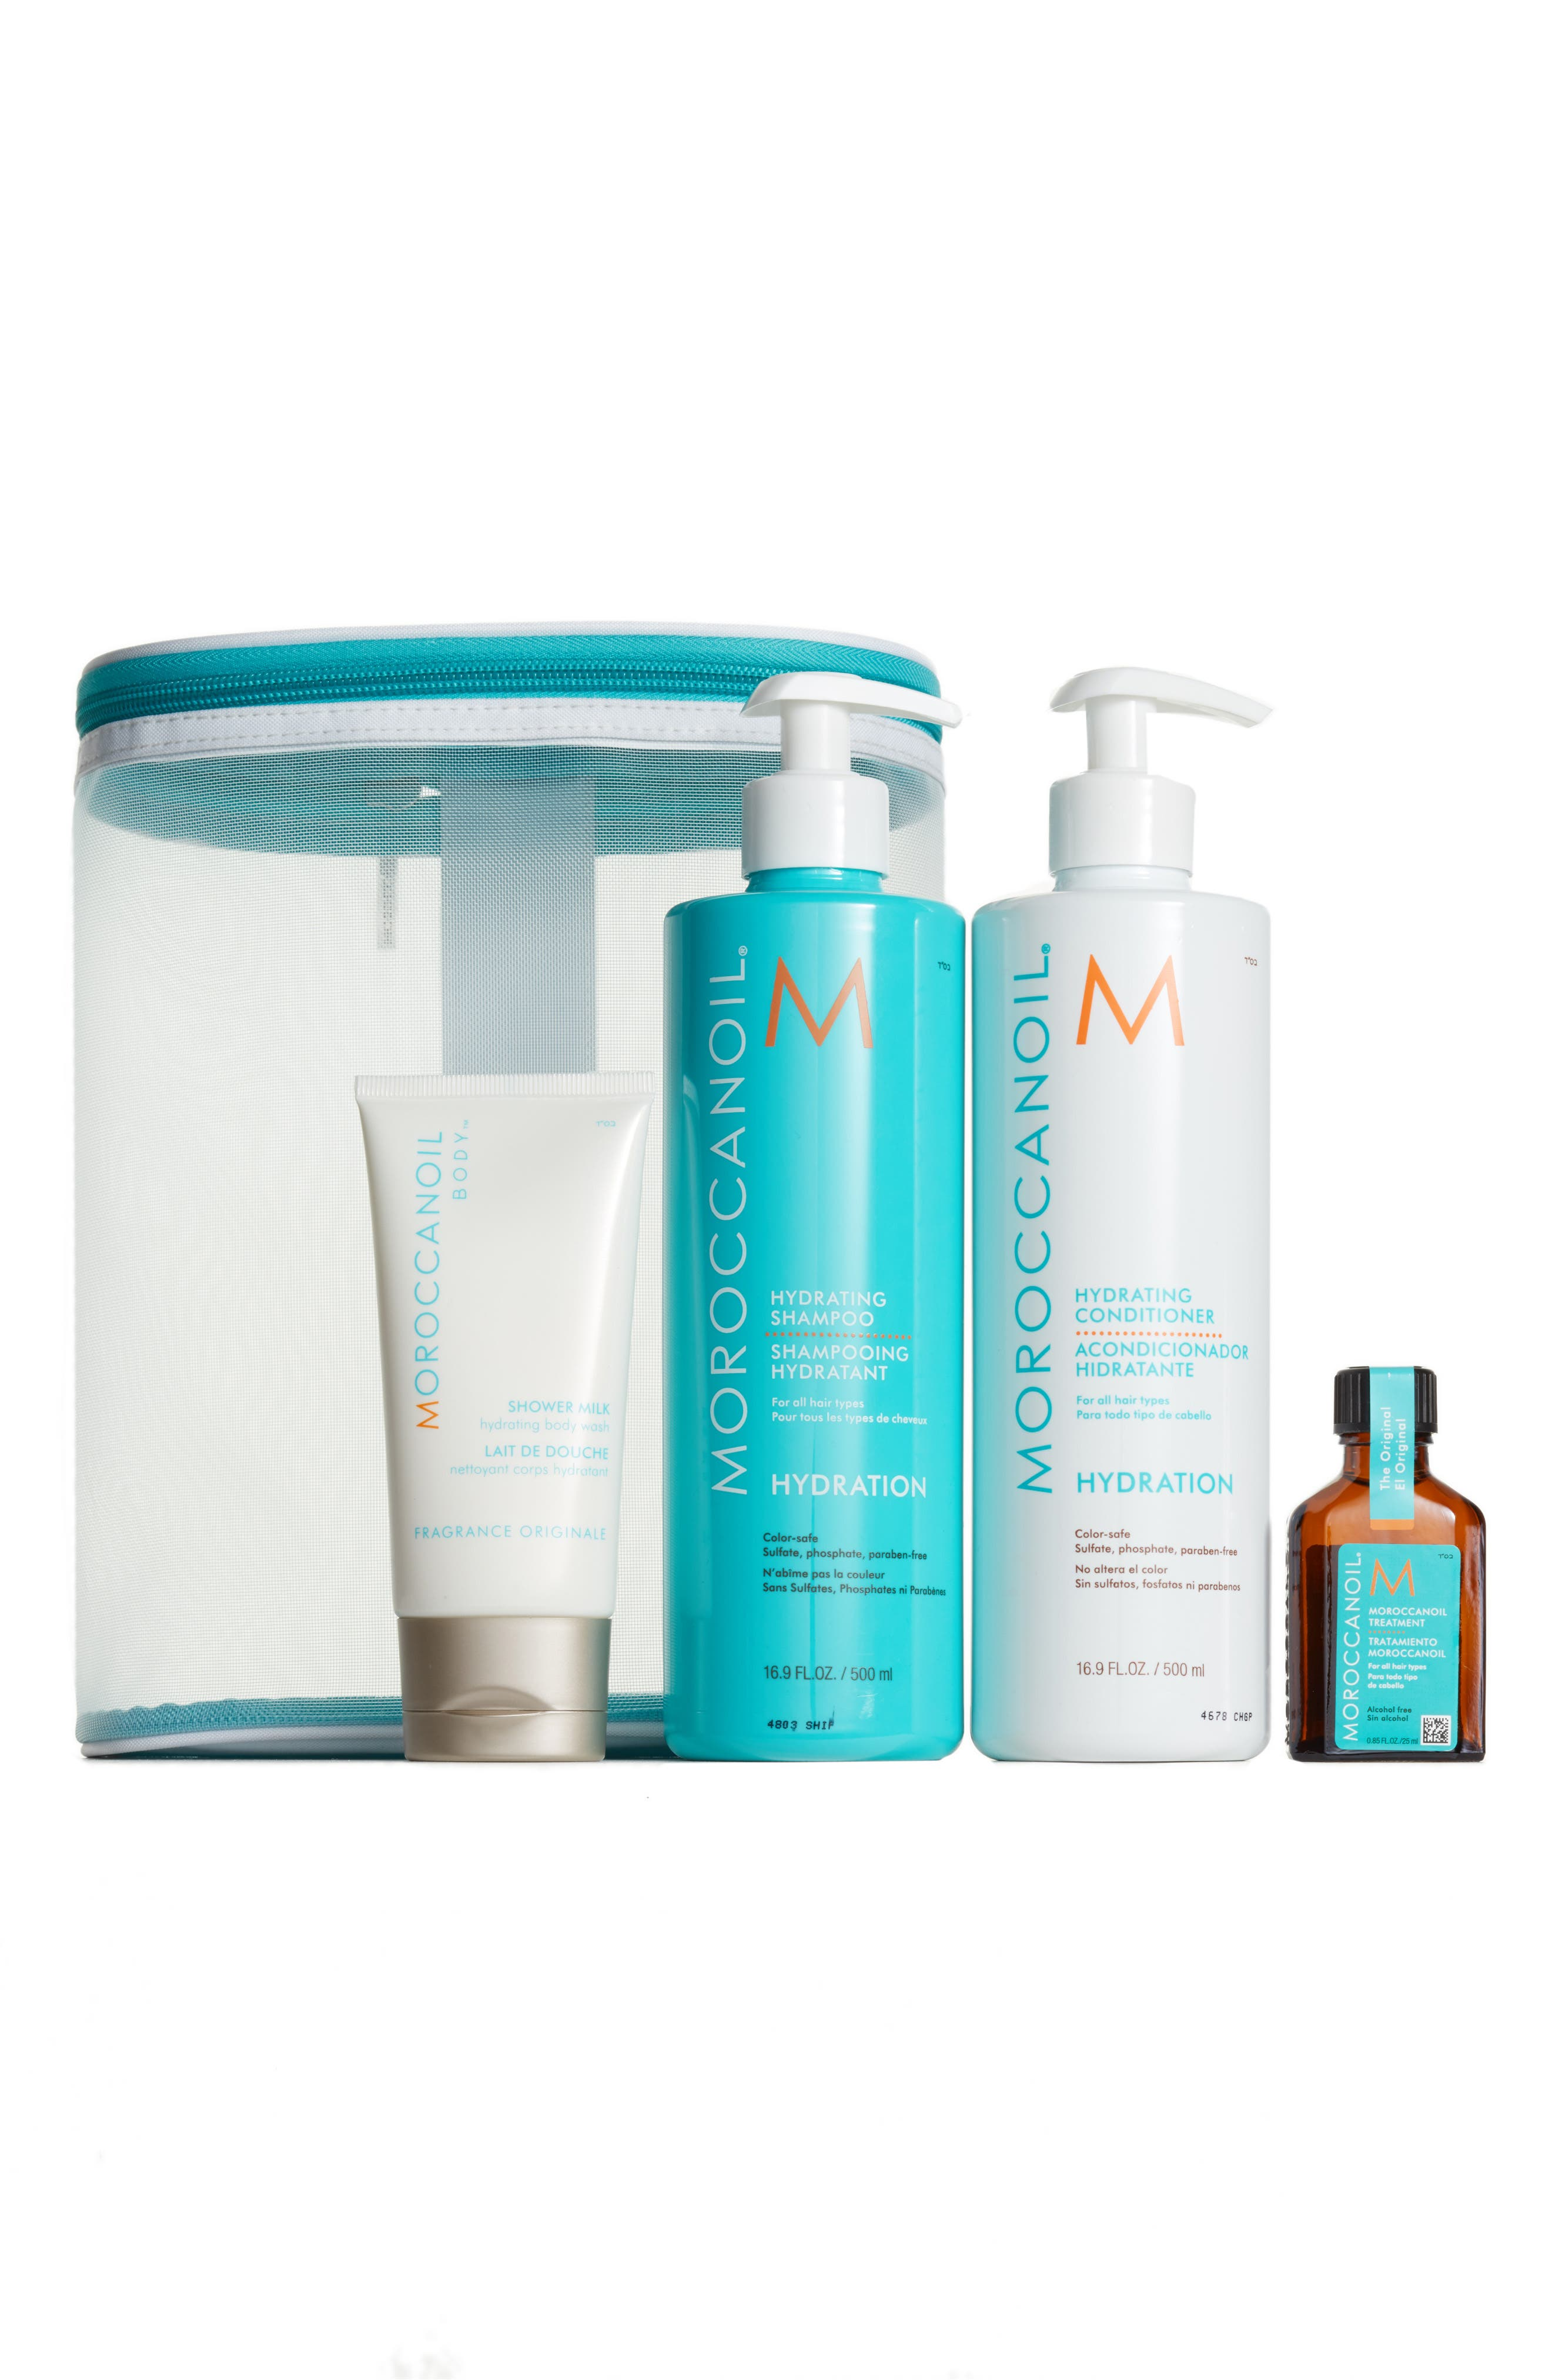 MOROCCANOIL® The Ultimate Hydration Collection (Nordstrom Exclusive) ($112 Value)